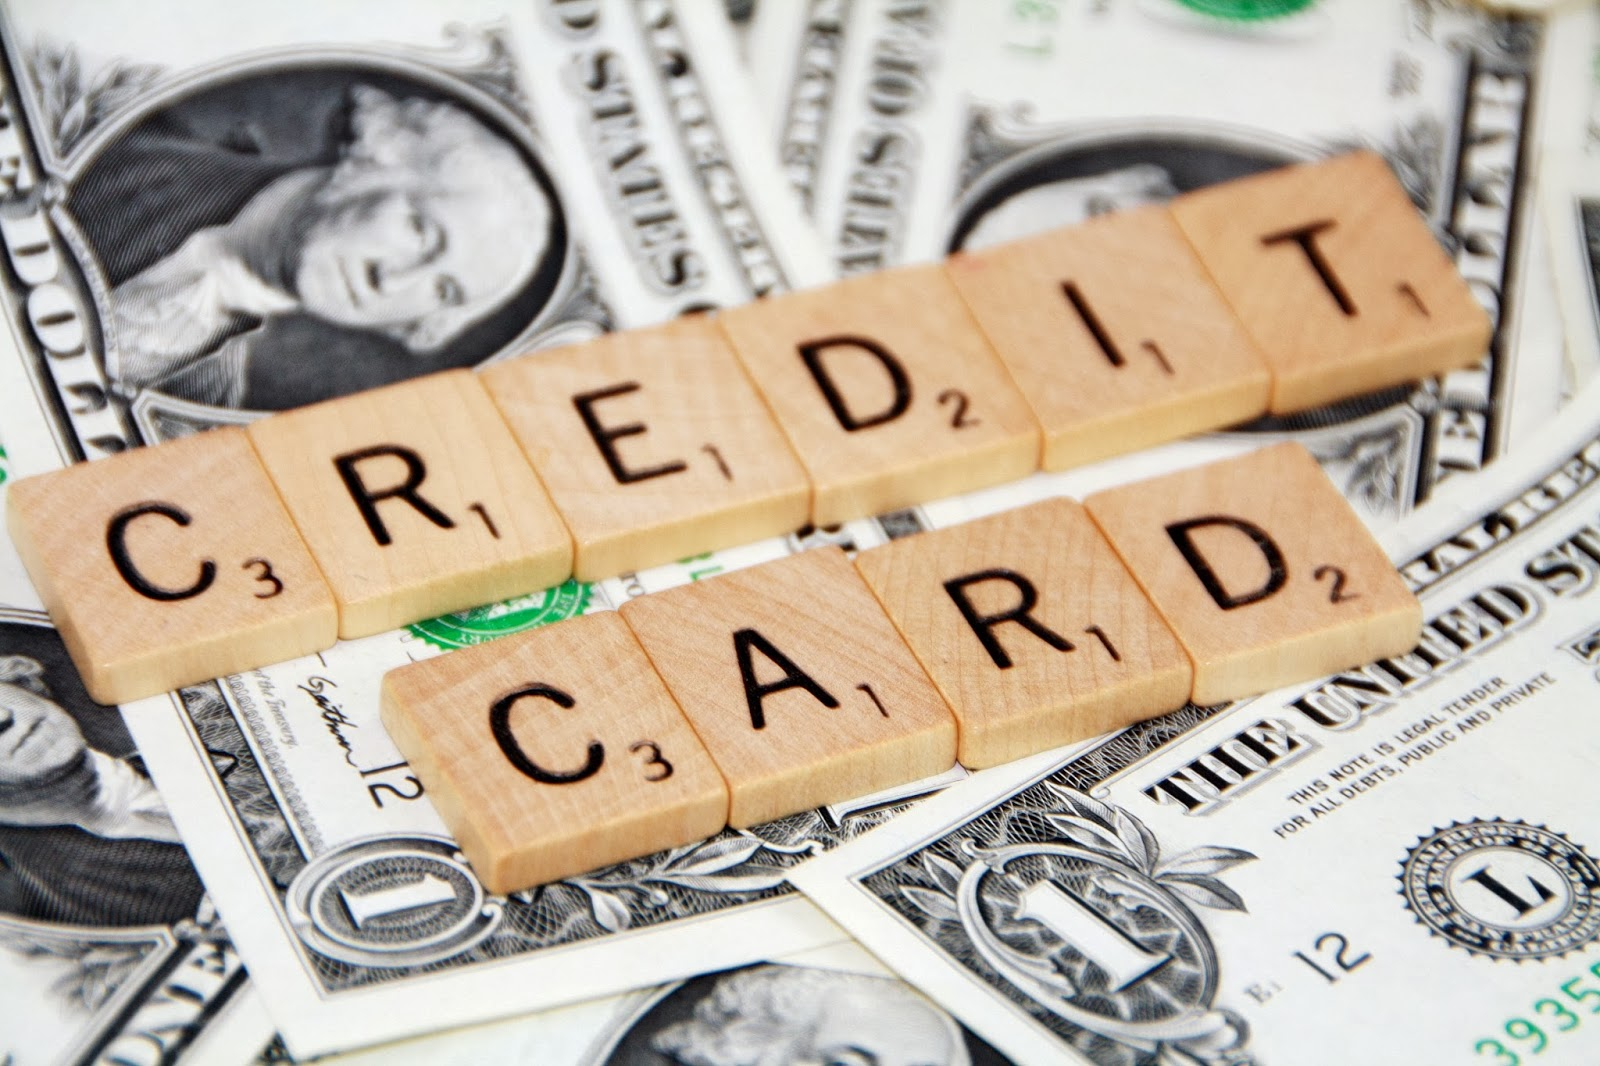 Credit card debt may be restructured or written off via bankruptcy